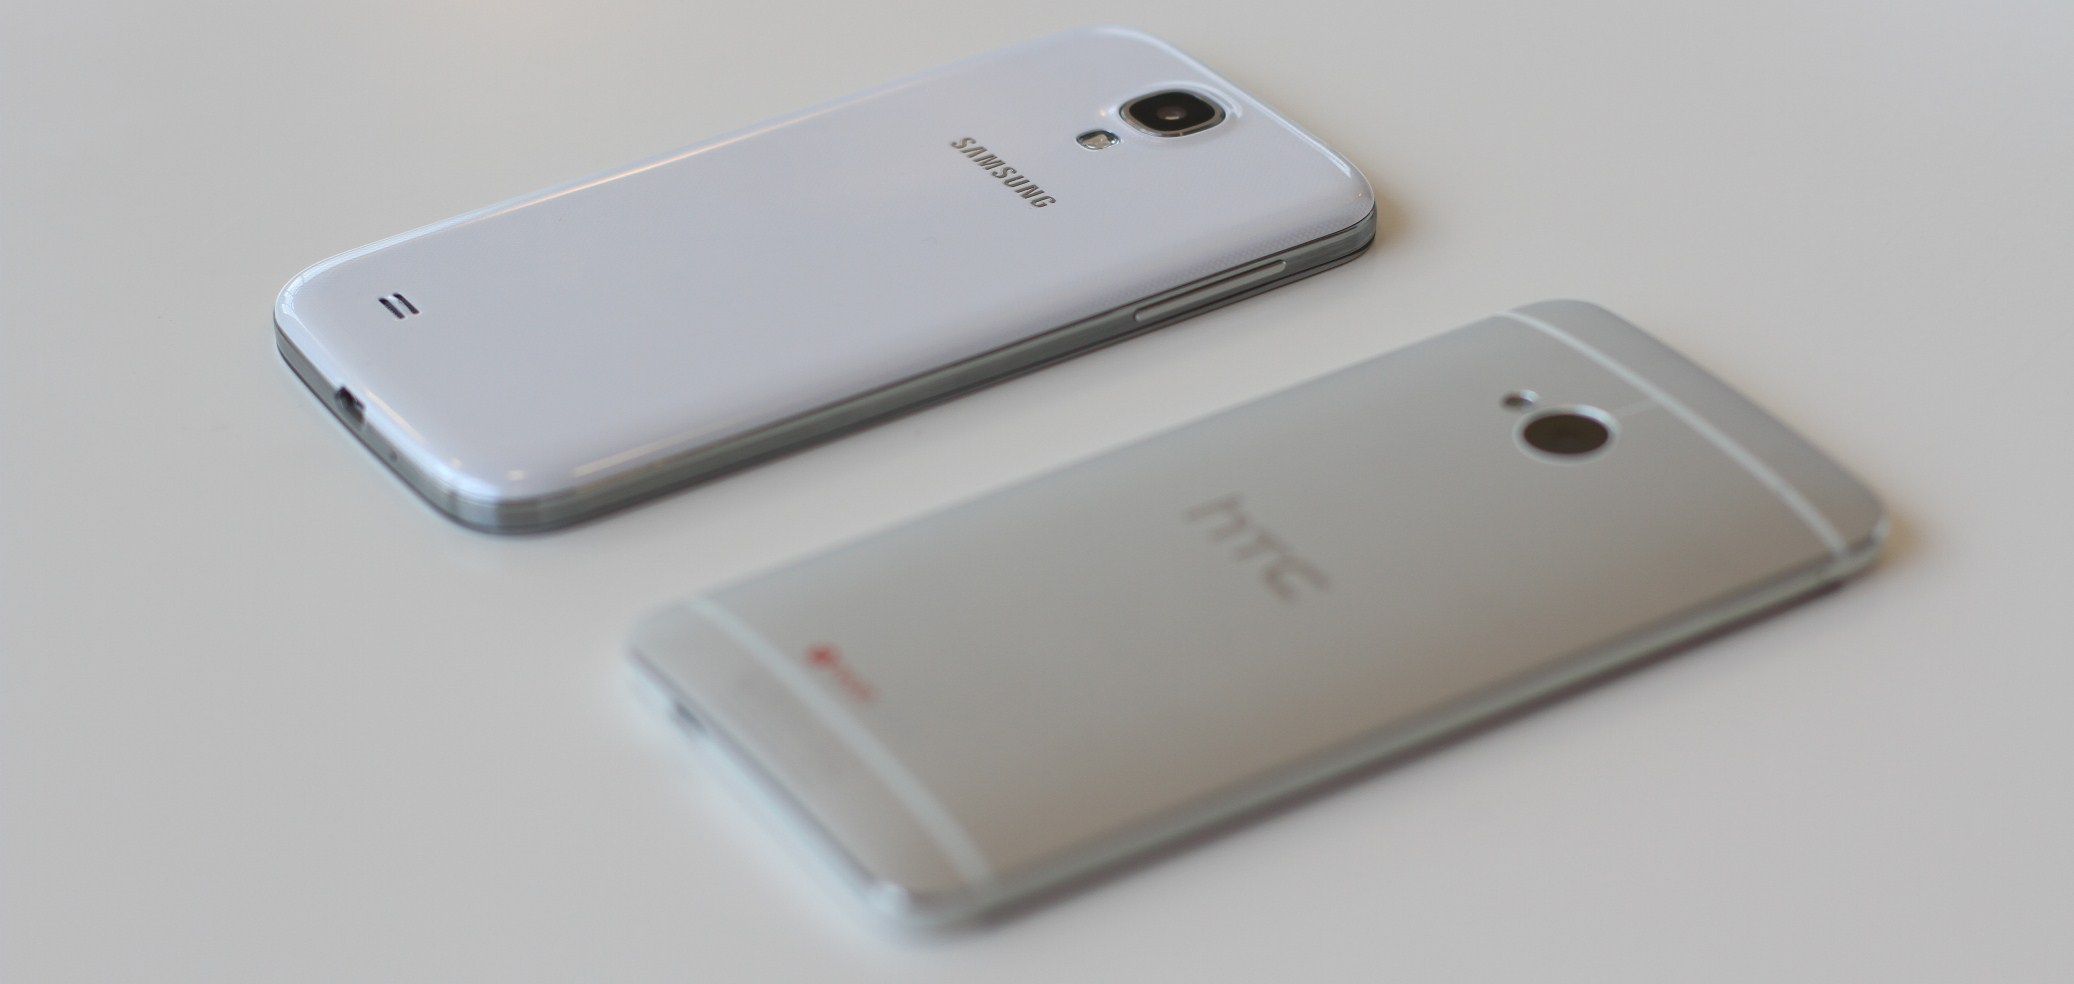 IMG 3659 Flagship phone shootout: Samsung Galaxy S4 vs HTC One